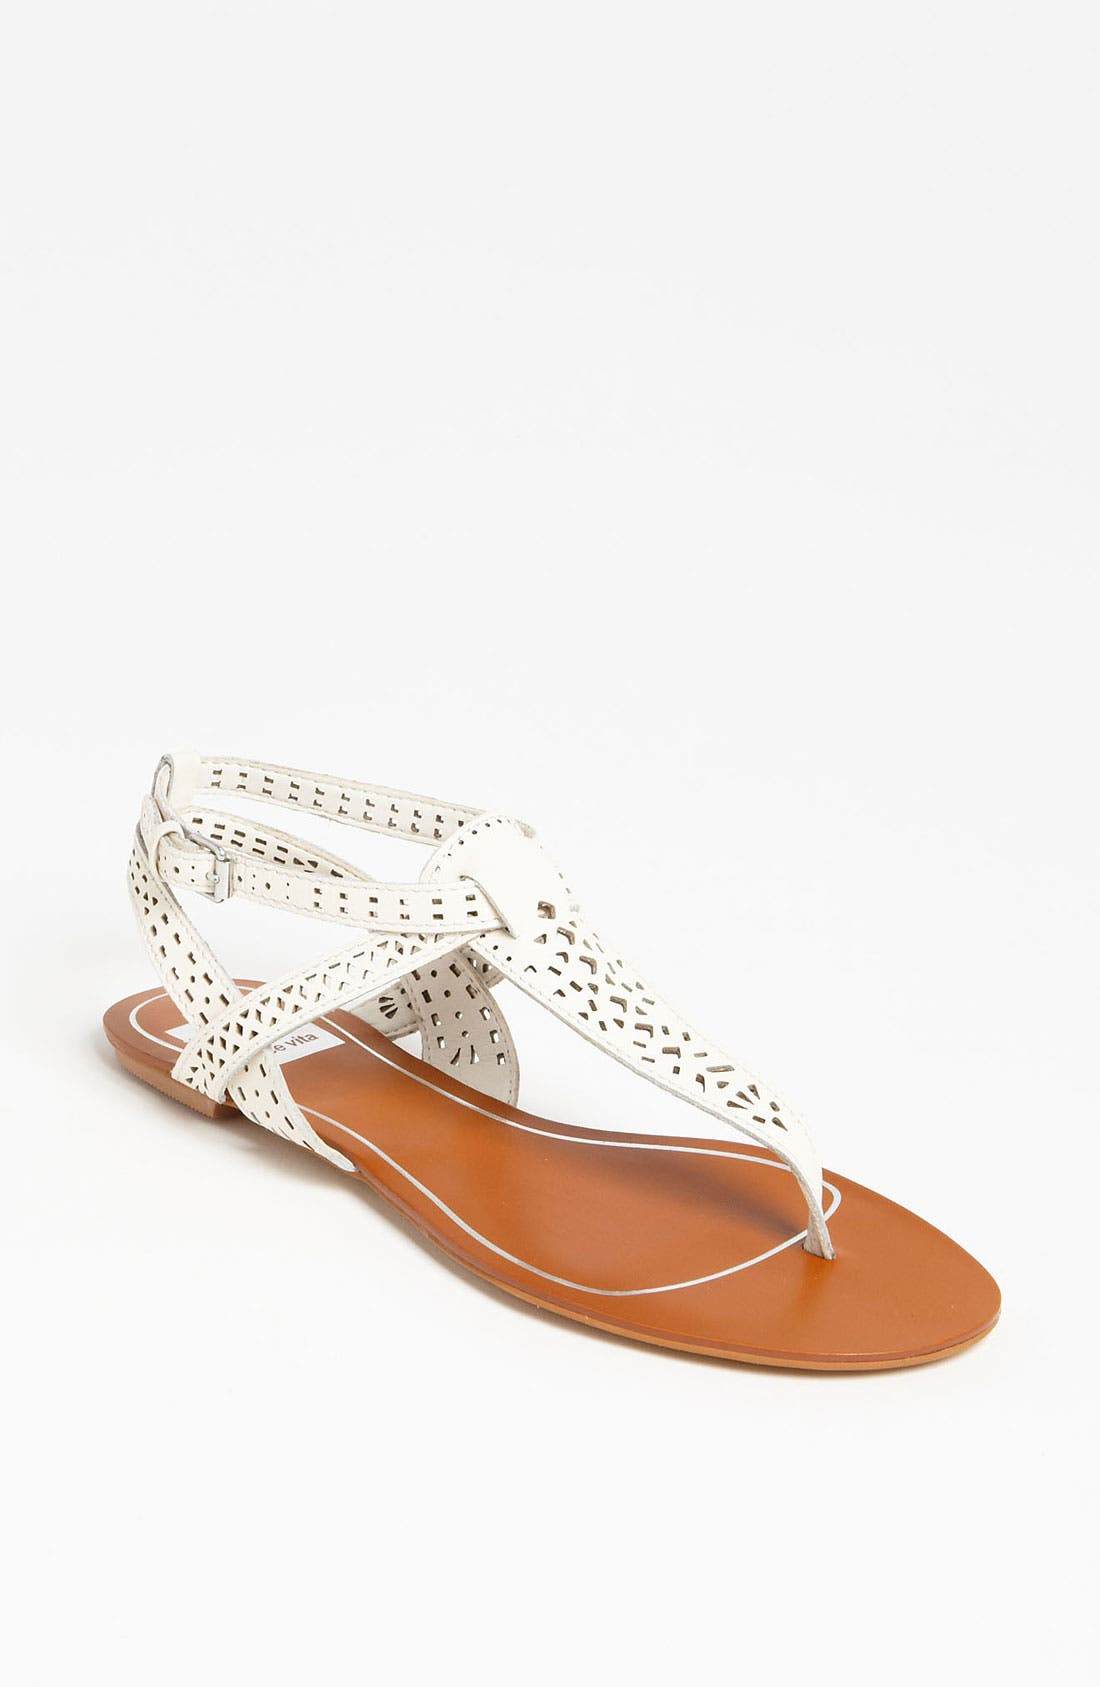 Alternate Image 1 Selected - Dolce Vita 'Irina' Sandal